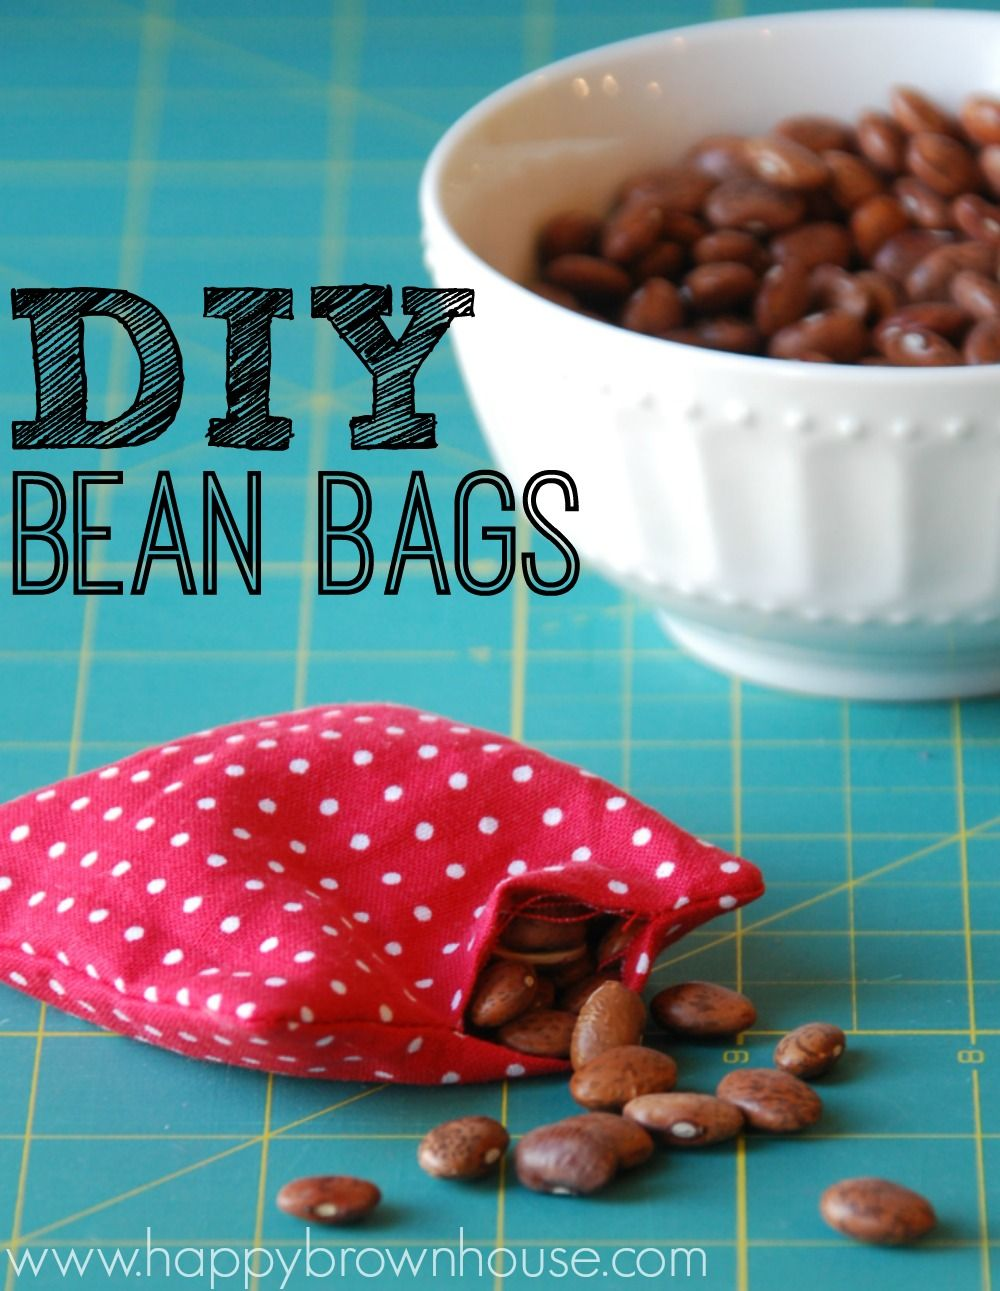 Make Bean Bags For The Kids Pennies These Are Perfect Beginner Sewing Project And Can Use Up S Fabric Great Idea A Classroom Set